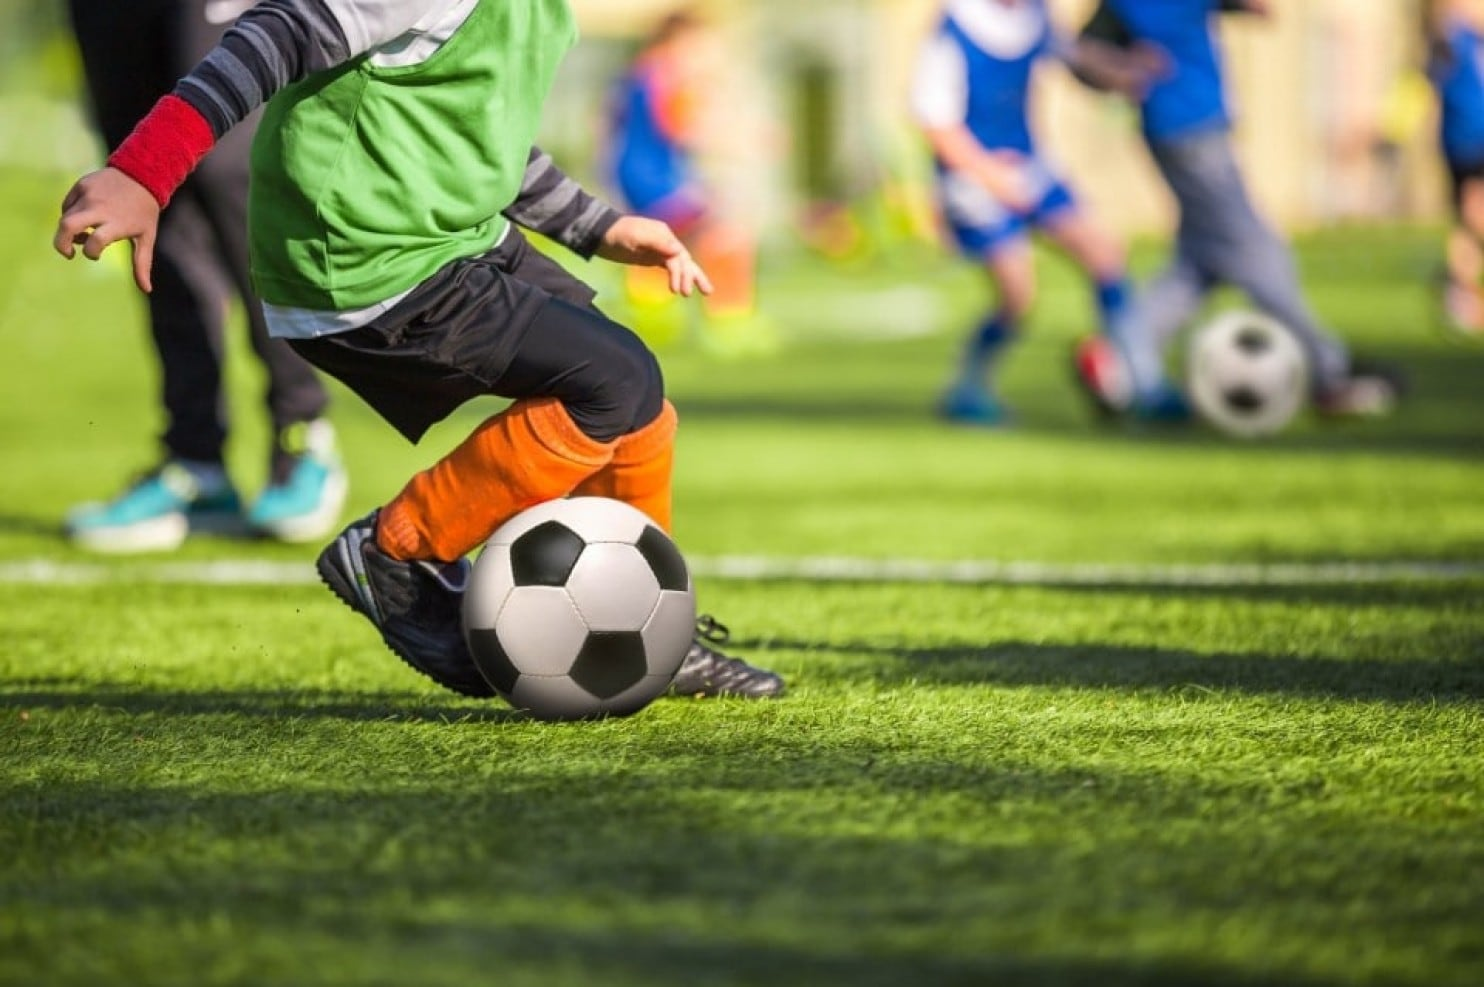 The Washington Post: Why we still allow bullying to flourish in kids sports -